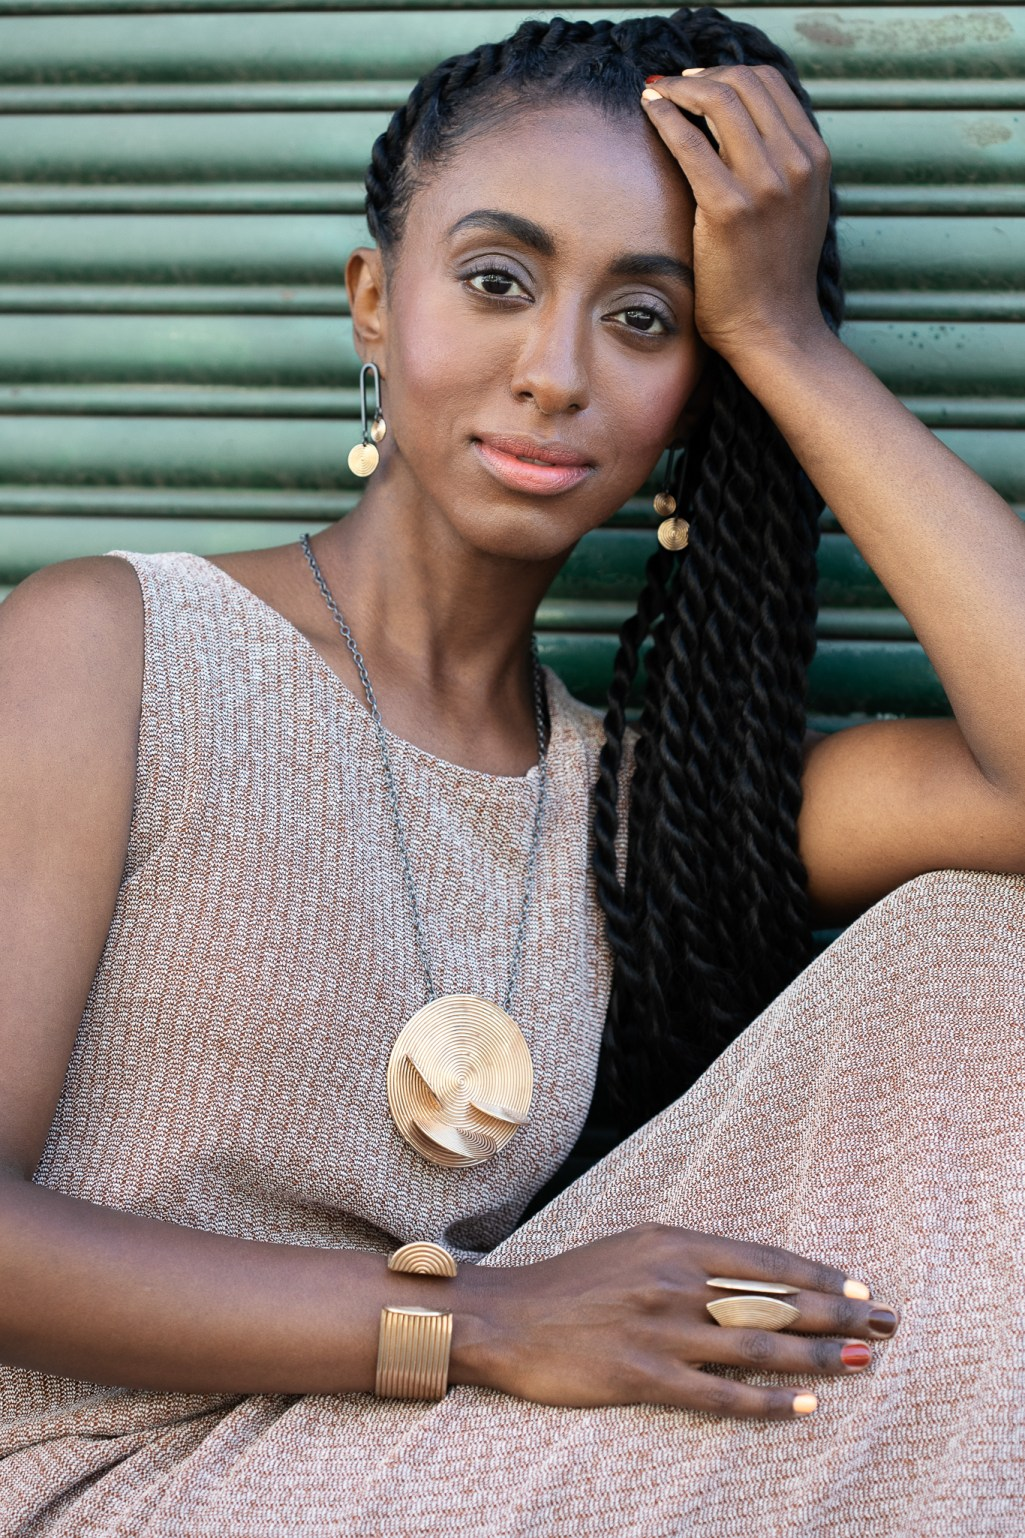 Branding photography for Oakland Jewelry Designer. Confident black woman posing with bronze jewelry.